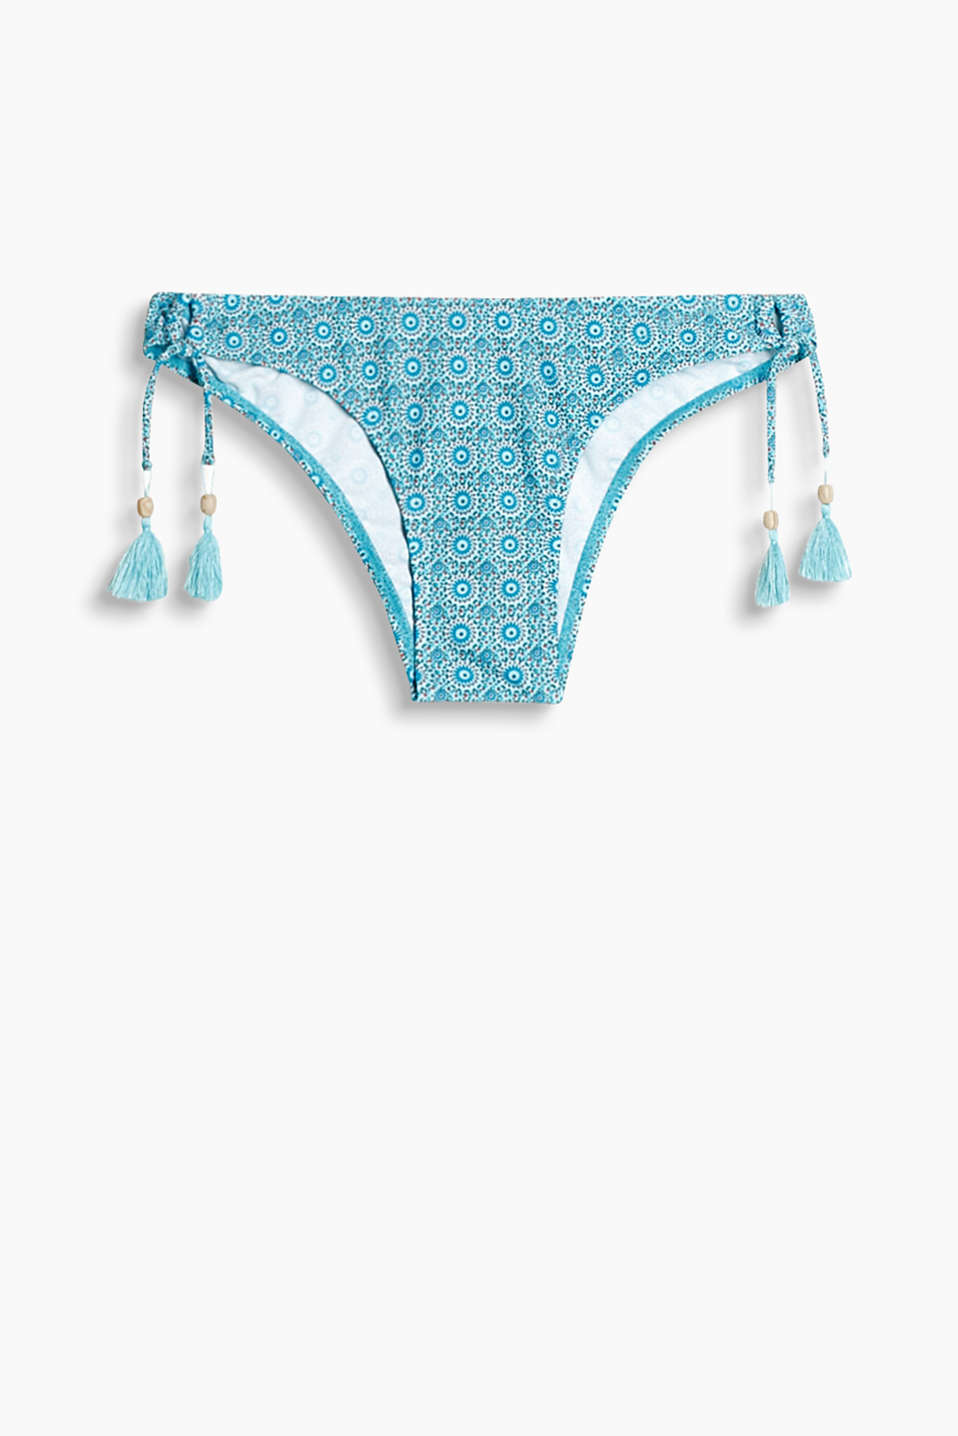 Collection: AUGUSTINE BEACH - skimpy bikini bottoms with an ornament pattern and tassels